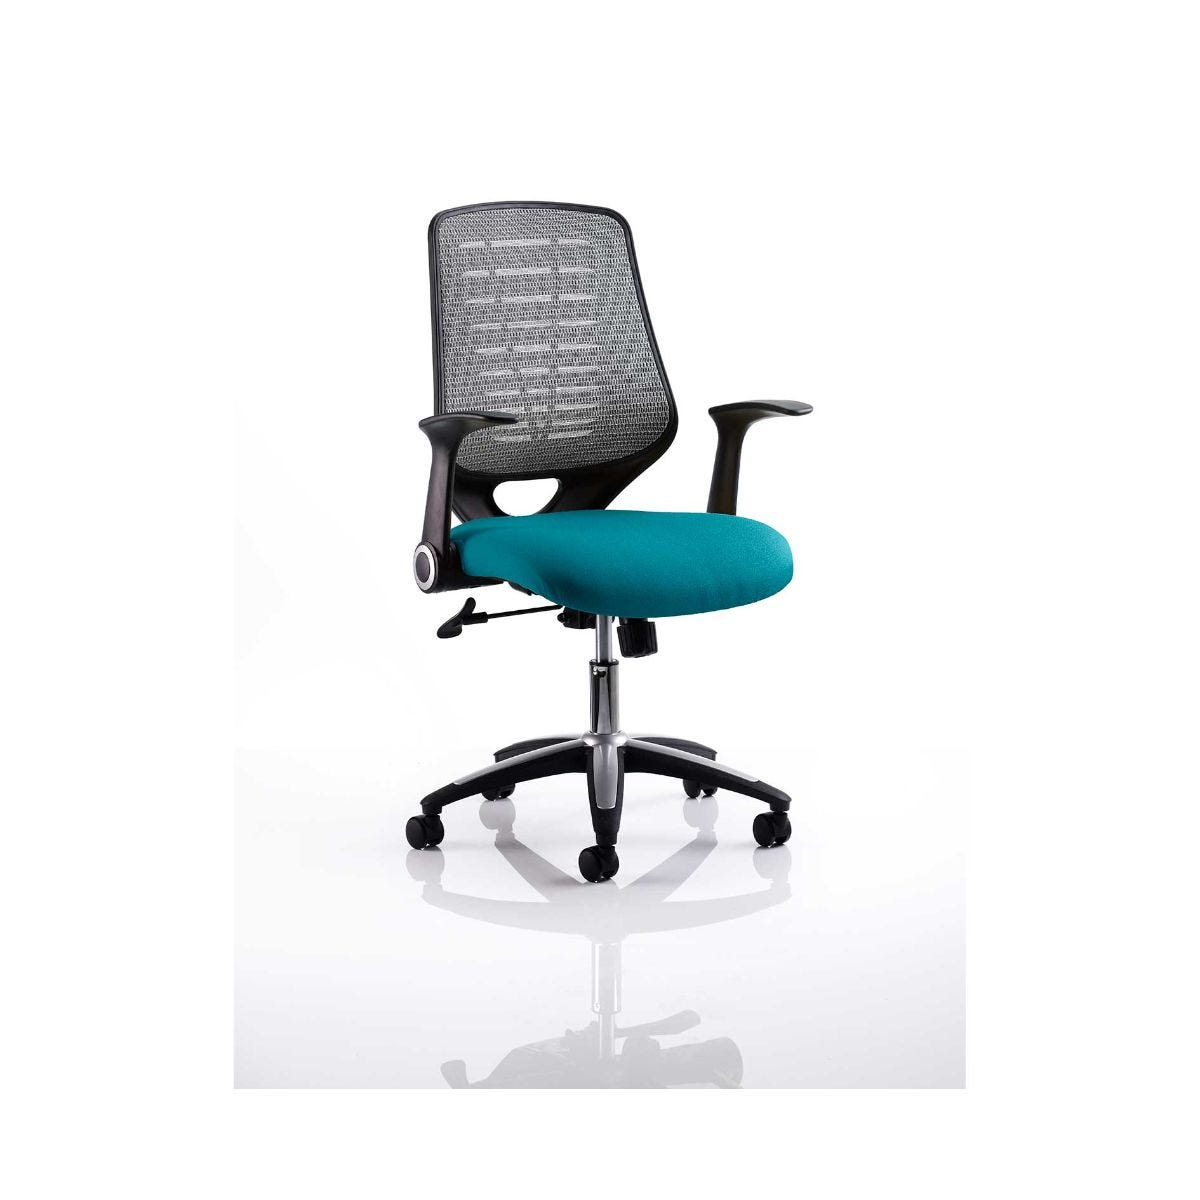 Relay Mesh Back Office Chair Silver, Maringa